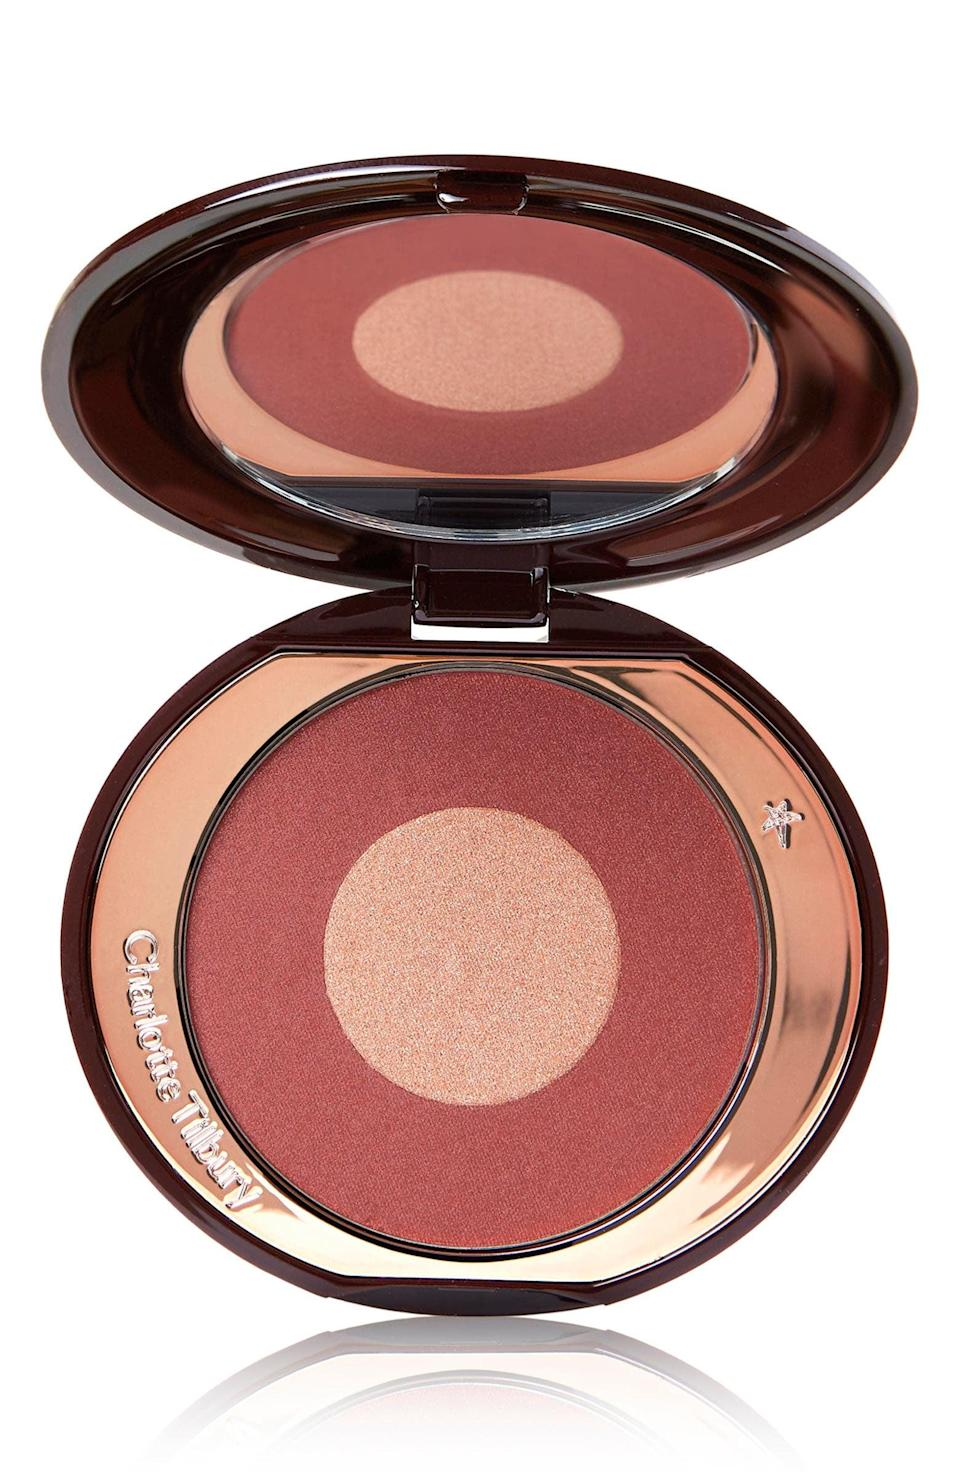 """<p><strong> The Product: </strong> <span>Charlotte Tilbury Cheek to Chic Blush</span> ($40)</p> <p><strong> The Rating: </strong> 4.5 stars </p> <p><strong> Why Customers Love It: </strong> Reviewers rave that this blush"""" gives a healthy glow to thier complexion. It blends beautifully and layers well with other products."""" </p>"""